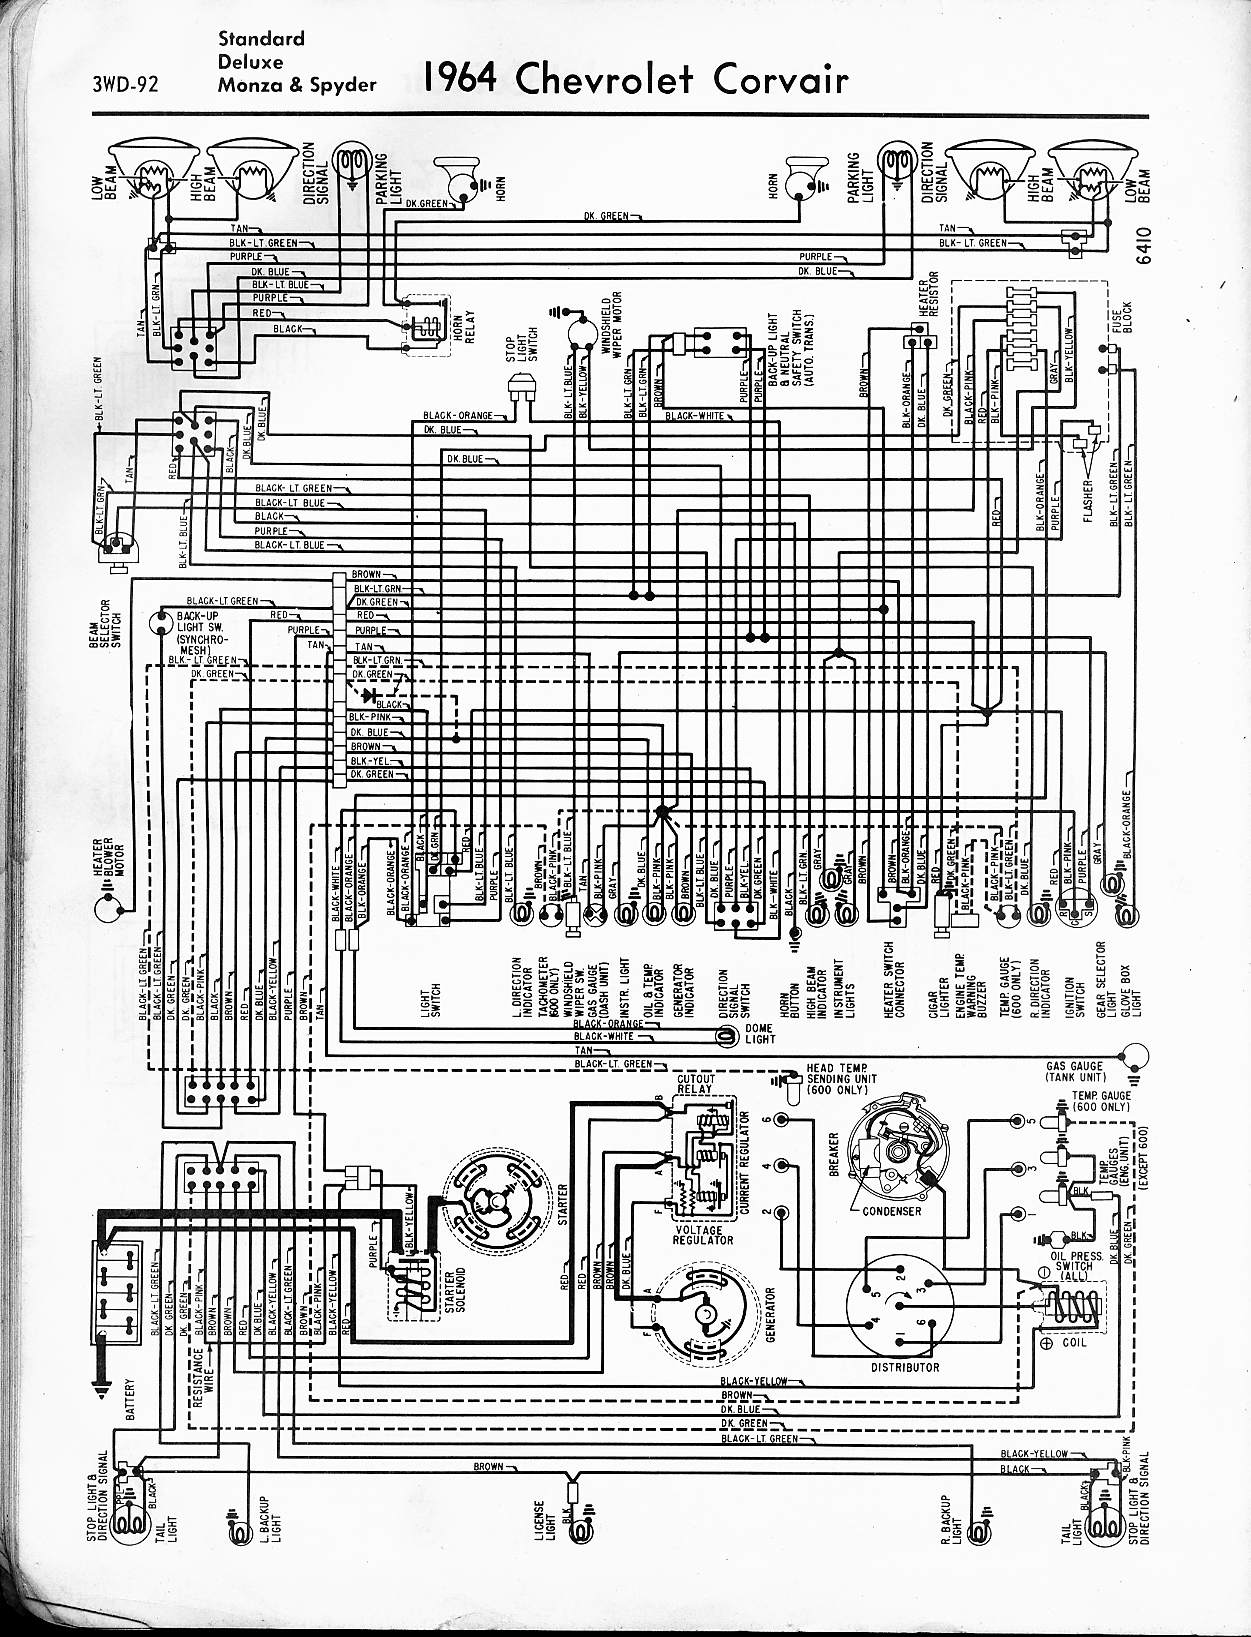 57 65 Chevy Wiring Diagrams Garage Diagram Free Download Schematic 1964 Corvair Std Deluxe Monza Spyder